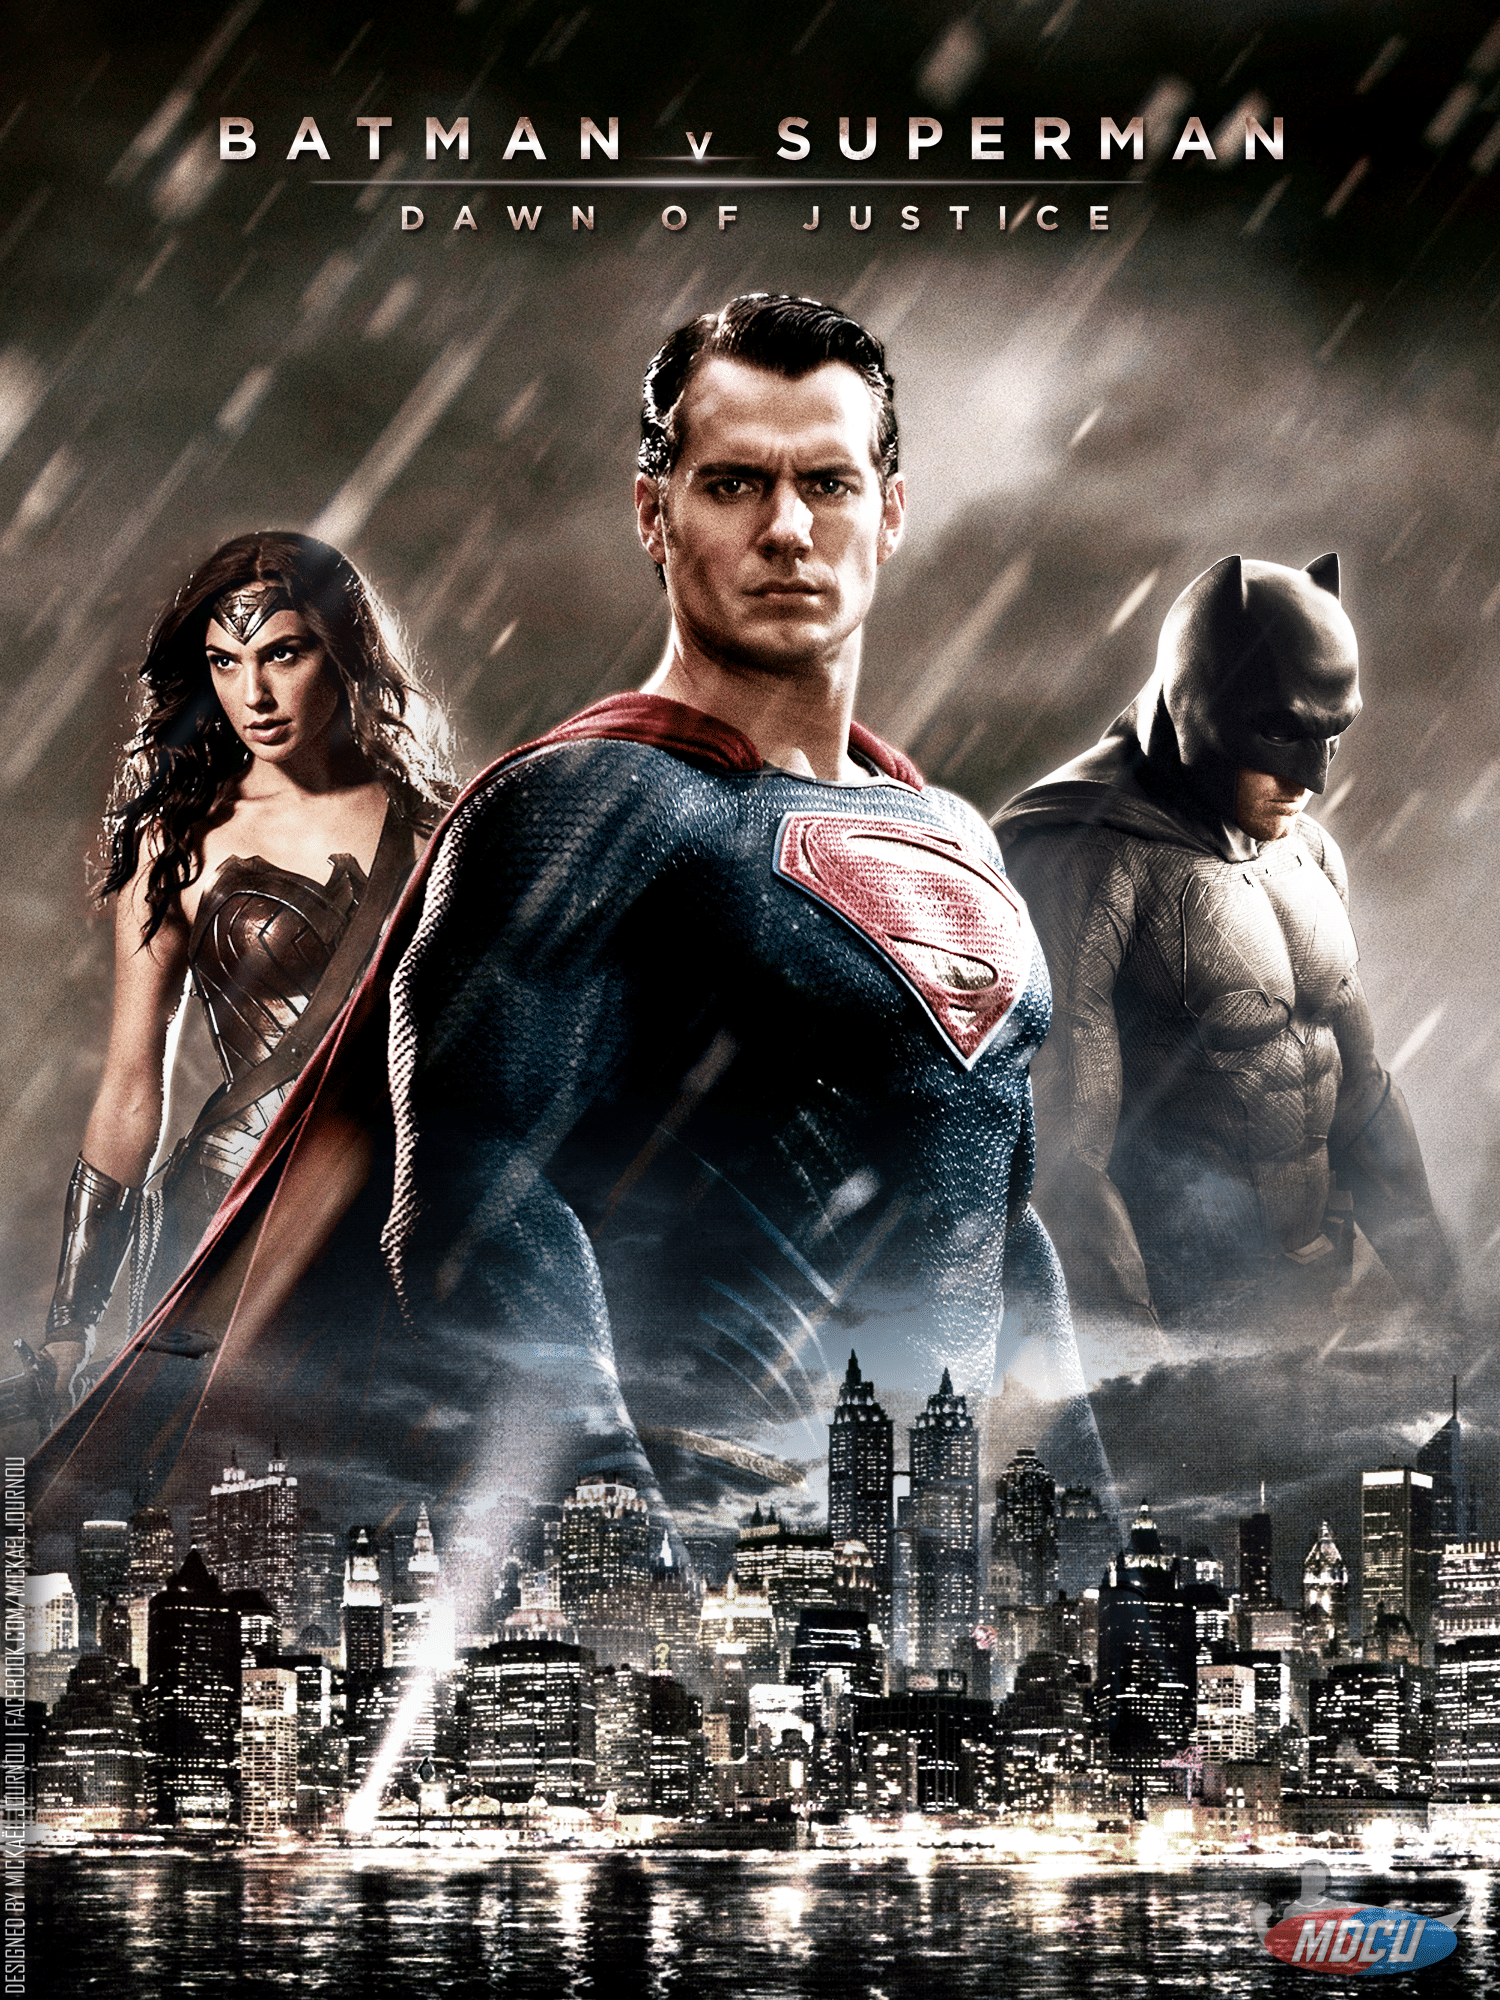 Batman V Superman Poster Collection 30 Posters Of Dcs Epic Saga